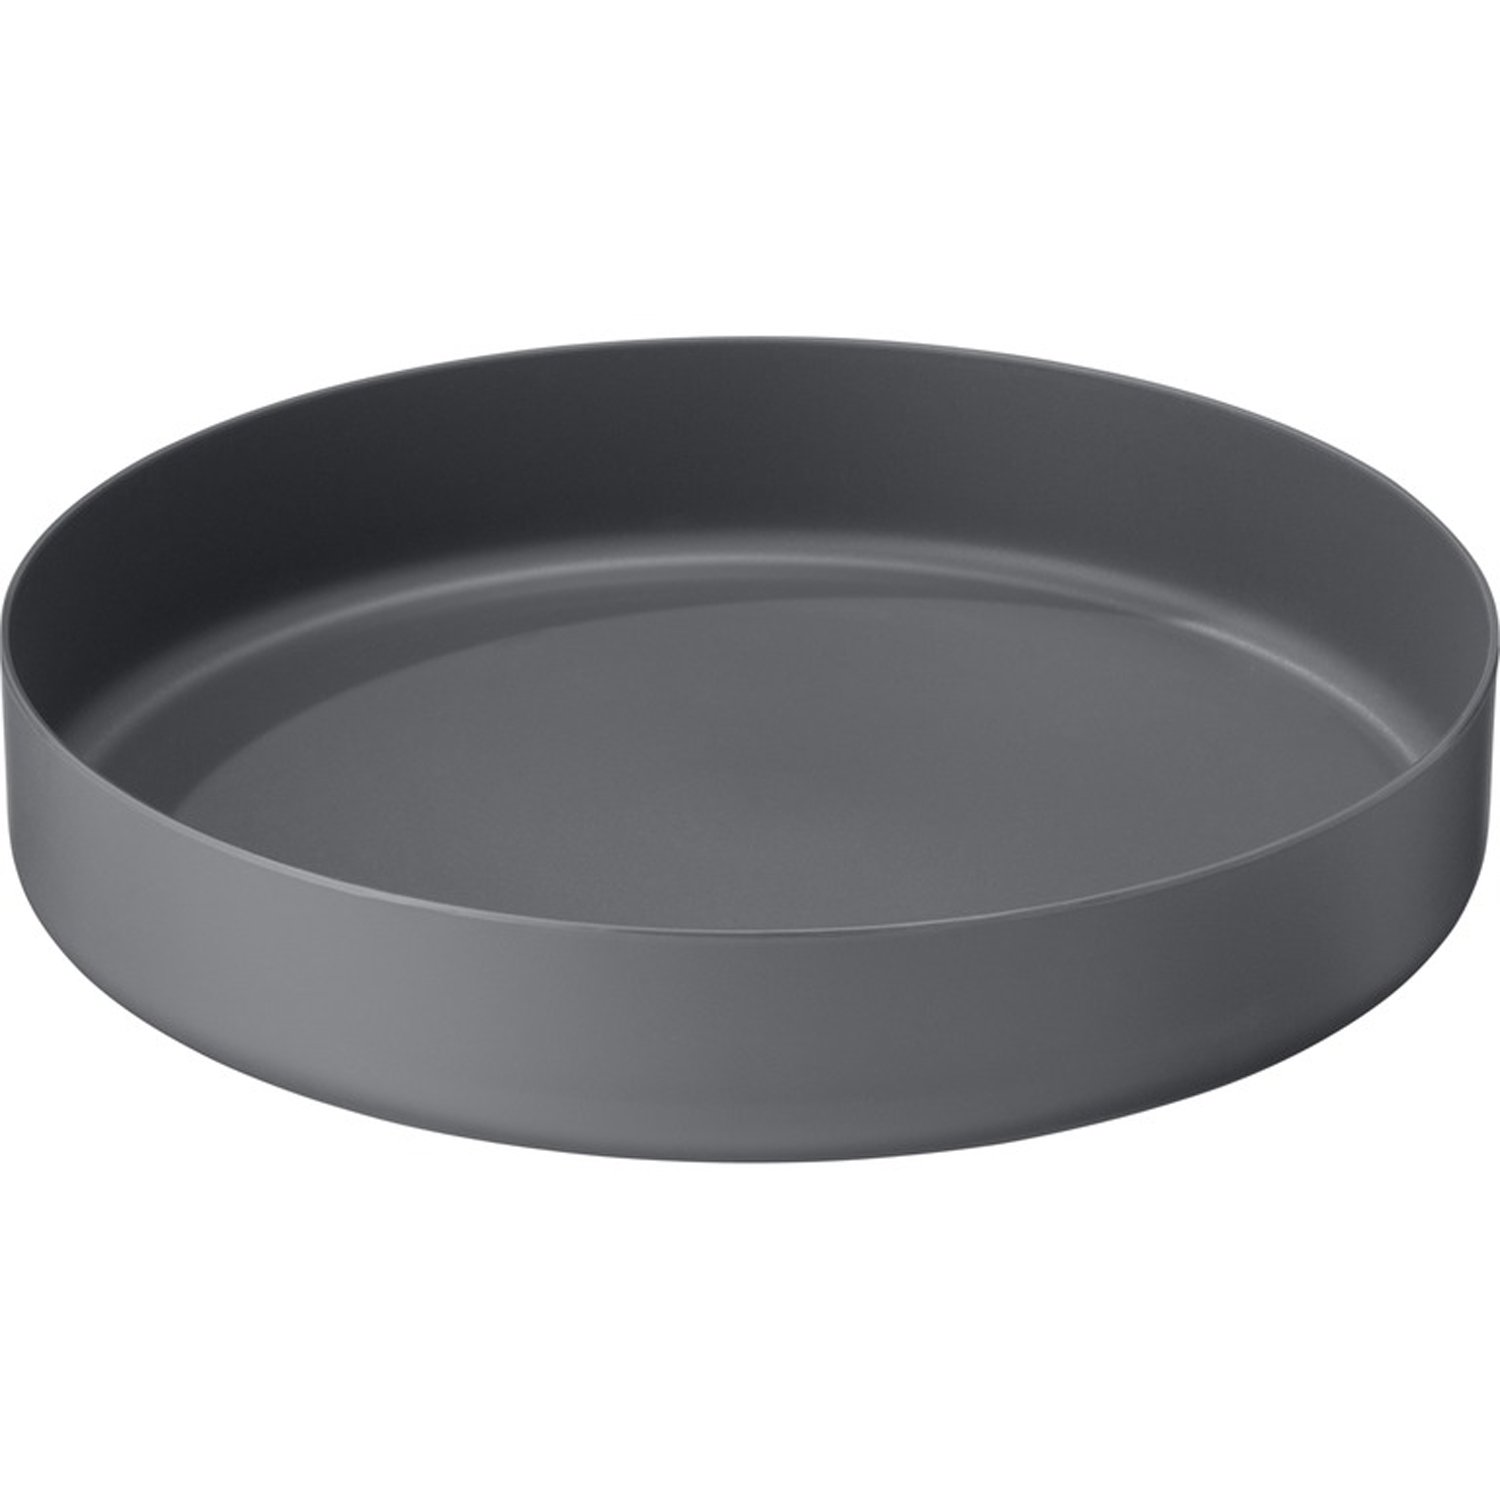 sc 1 st  Amazon.com & Amazon.com: MSR Deep Dish Plate Blue Medium: Sports \u0026 Outdoors